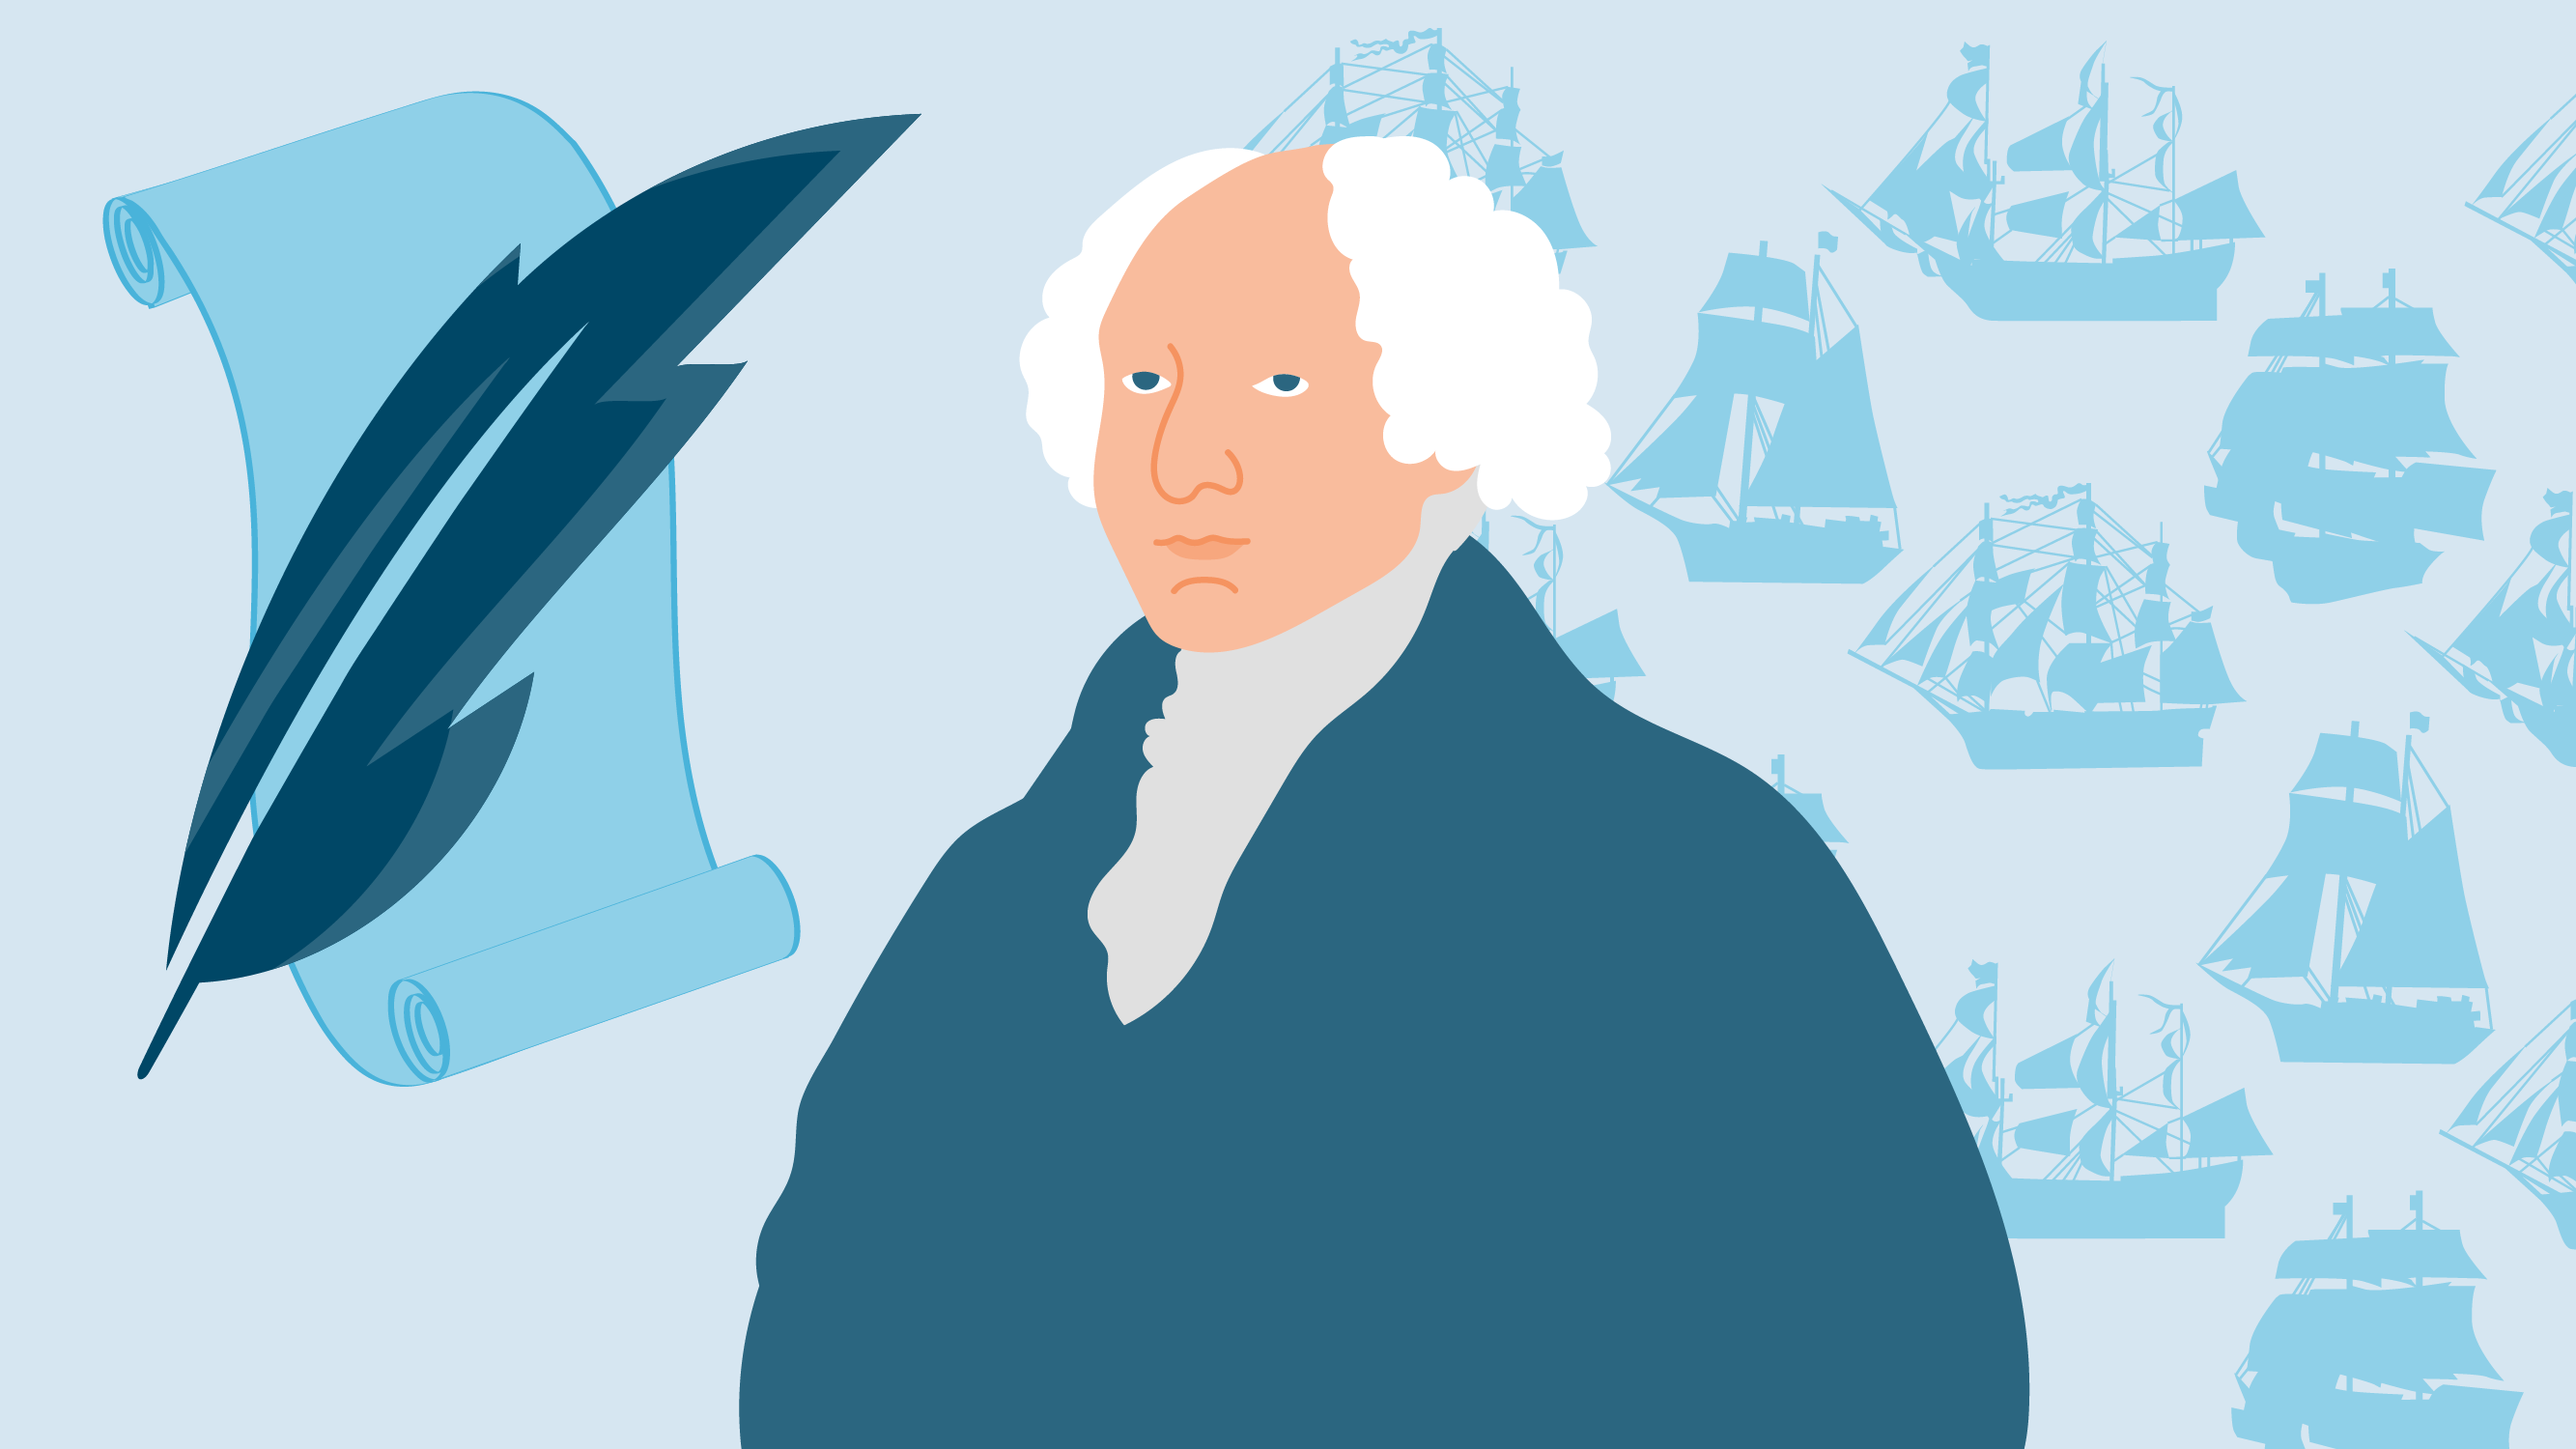 John Adams: American Founder and Second President